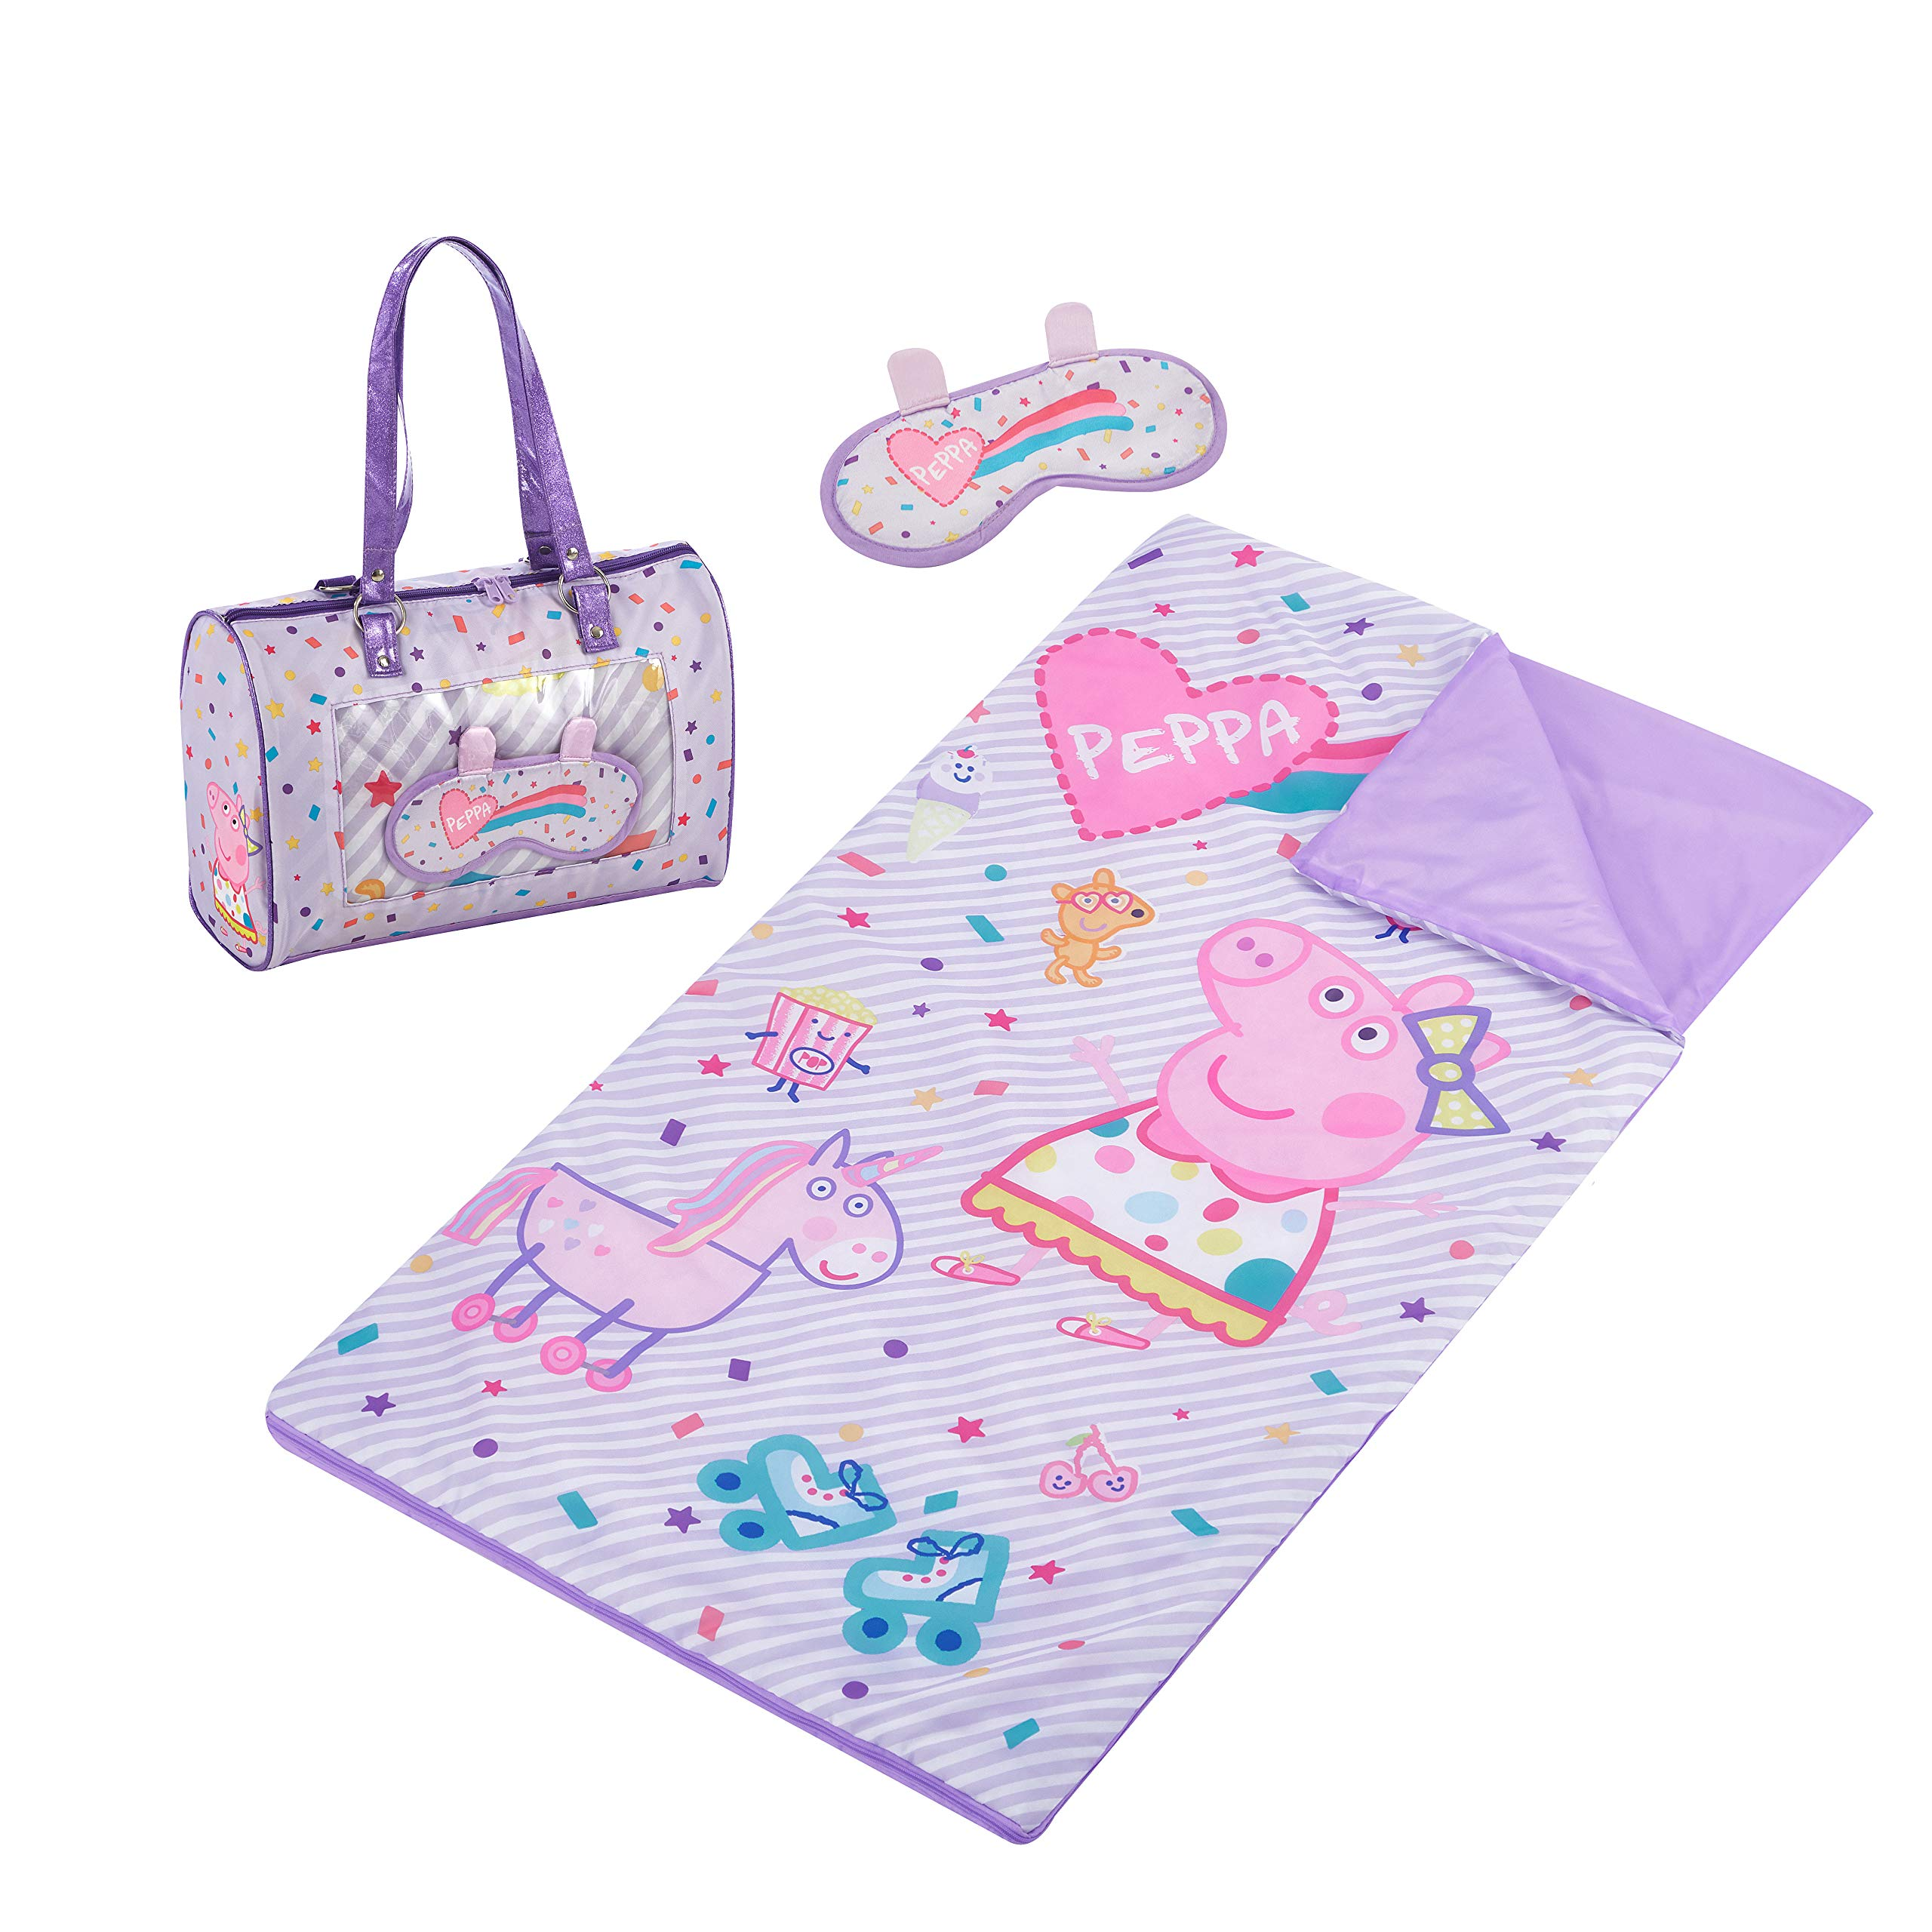 Entertainment One Peppa Pig Sleepover Purse & Eye Mask Set